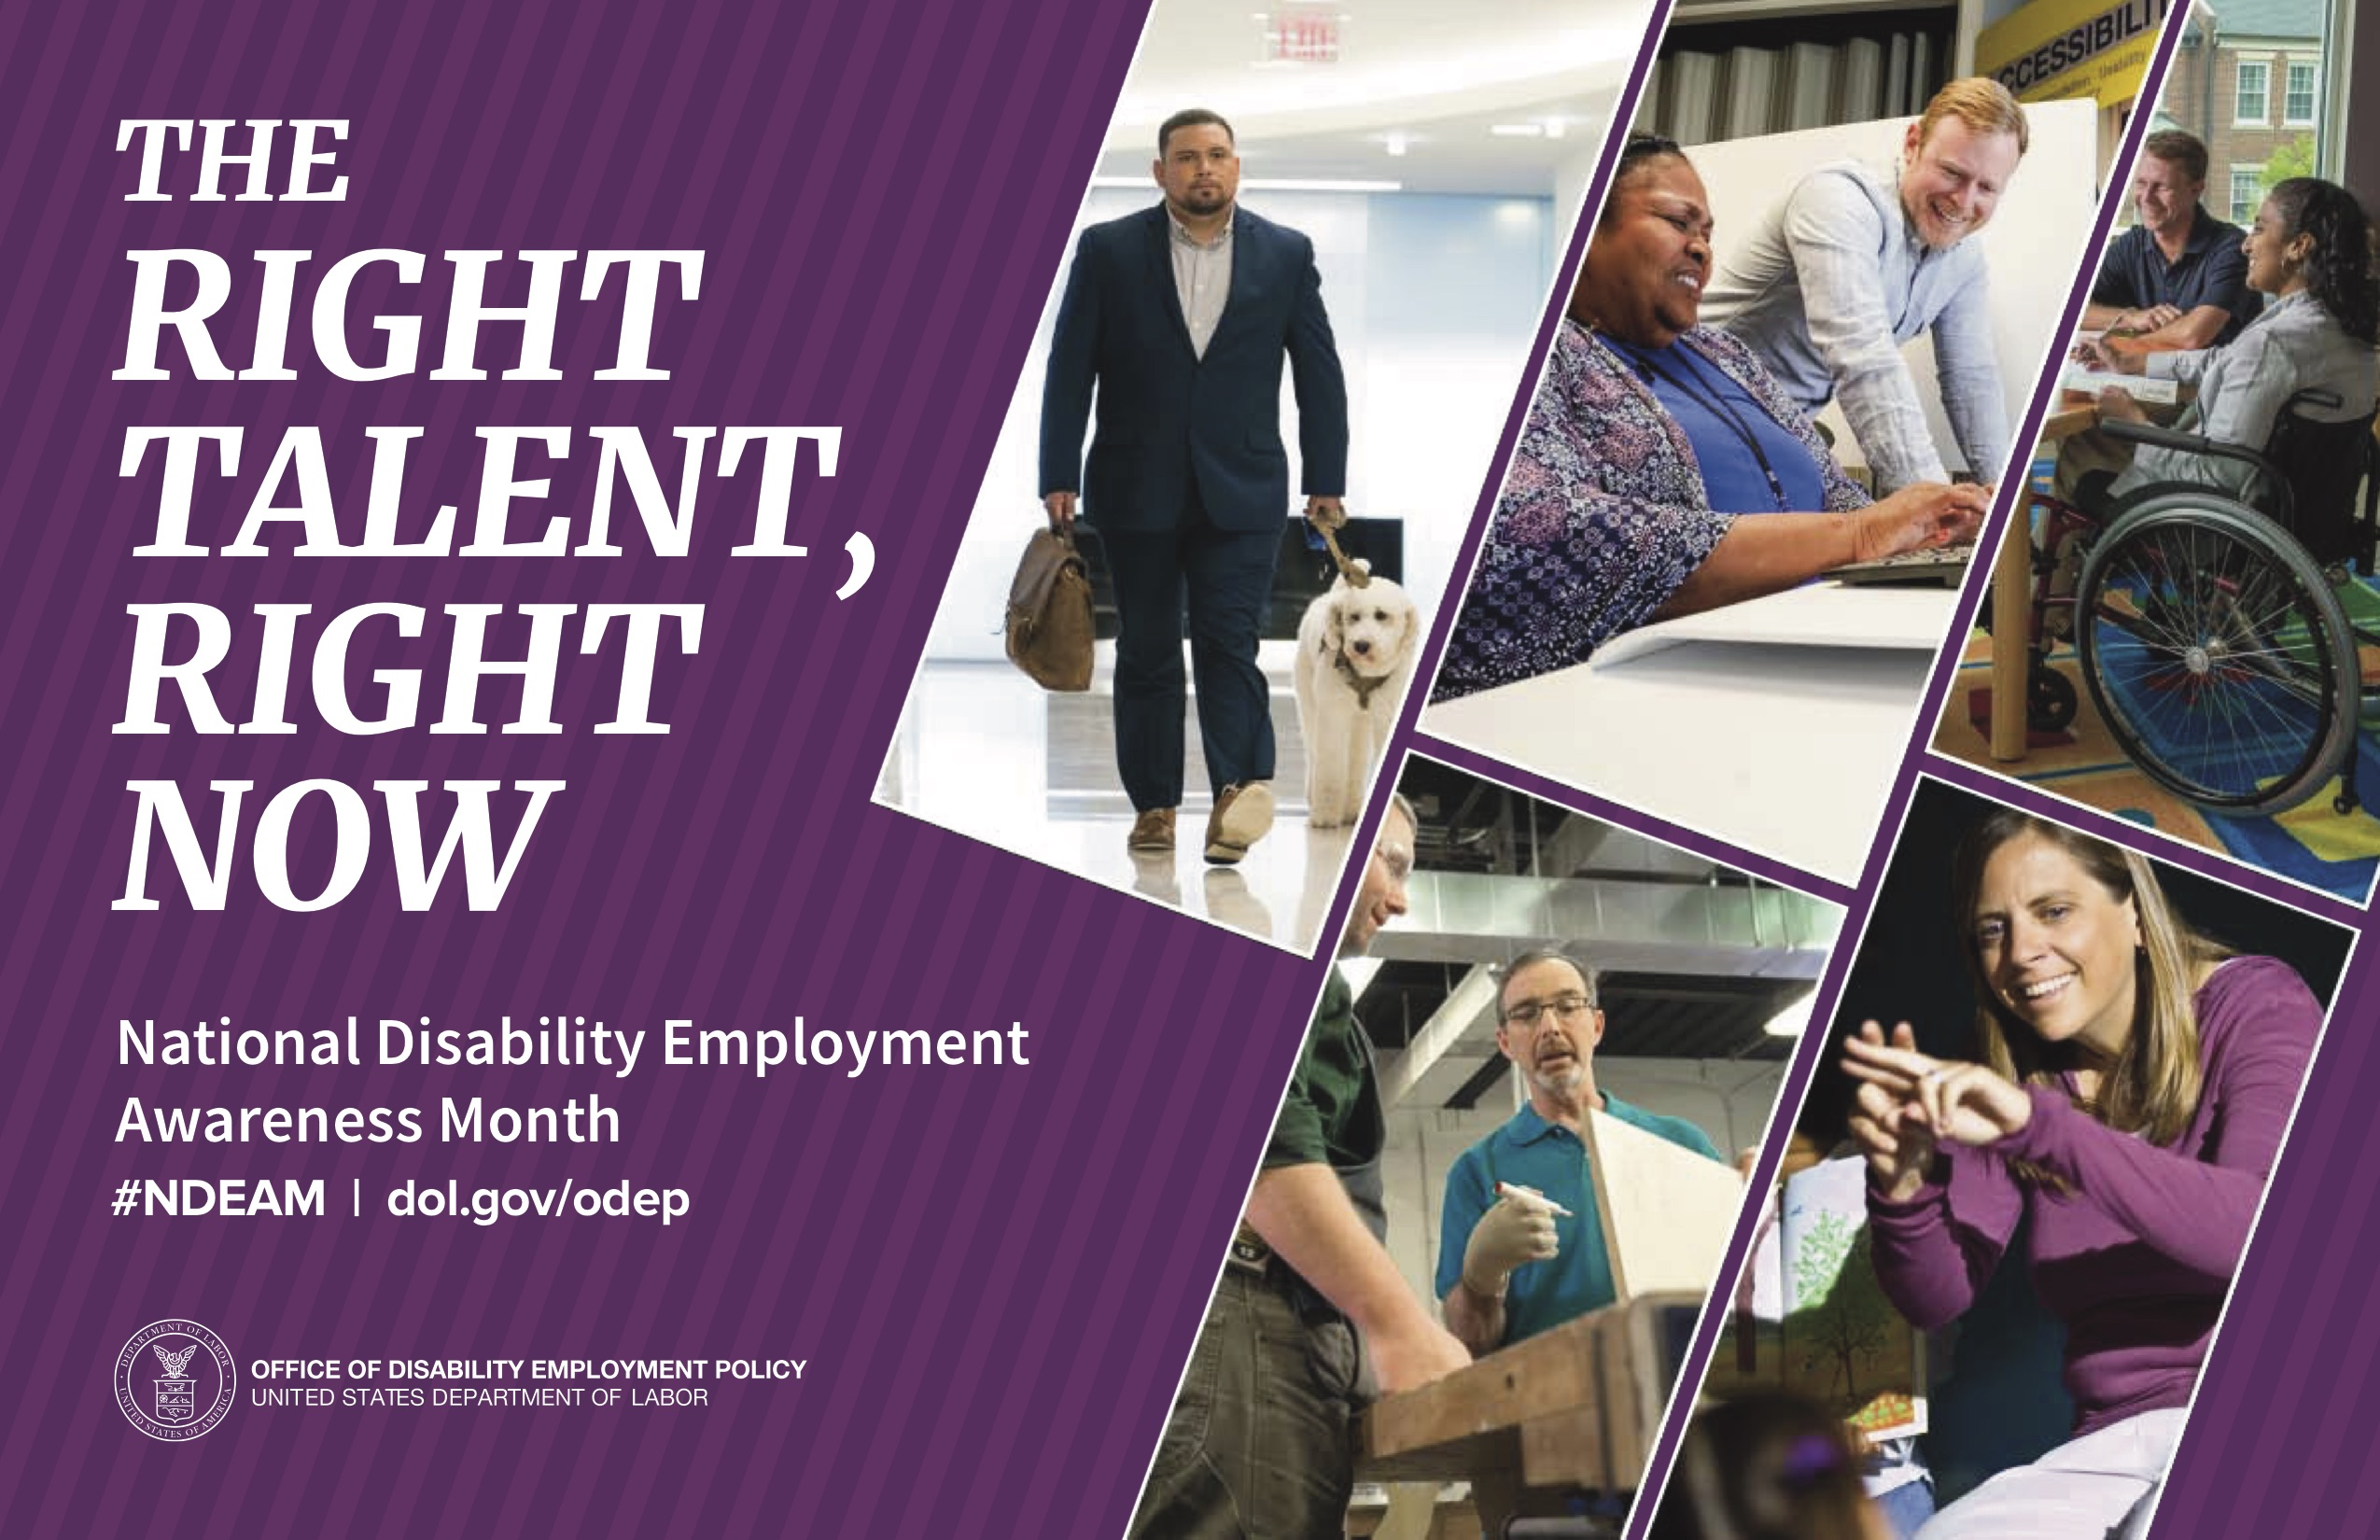 The Right Talent, Right Now (NDEAM Poster featuring images of people with disabilities at work)